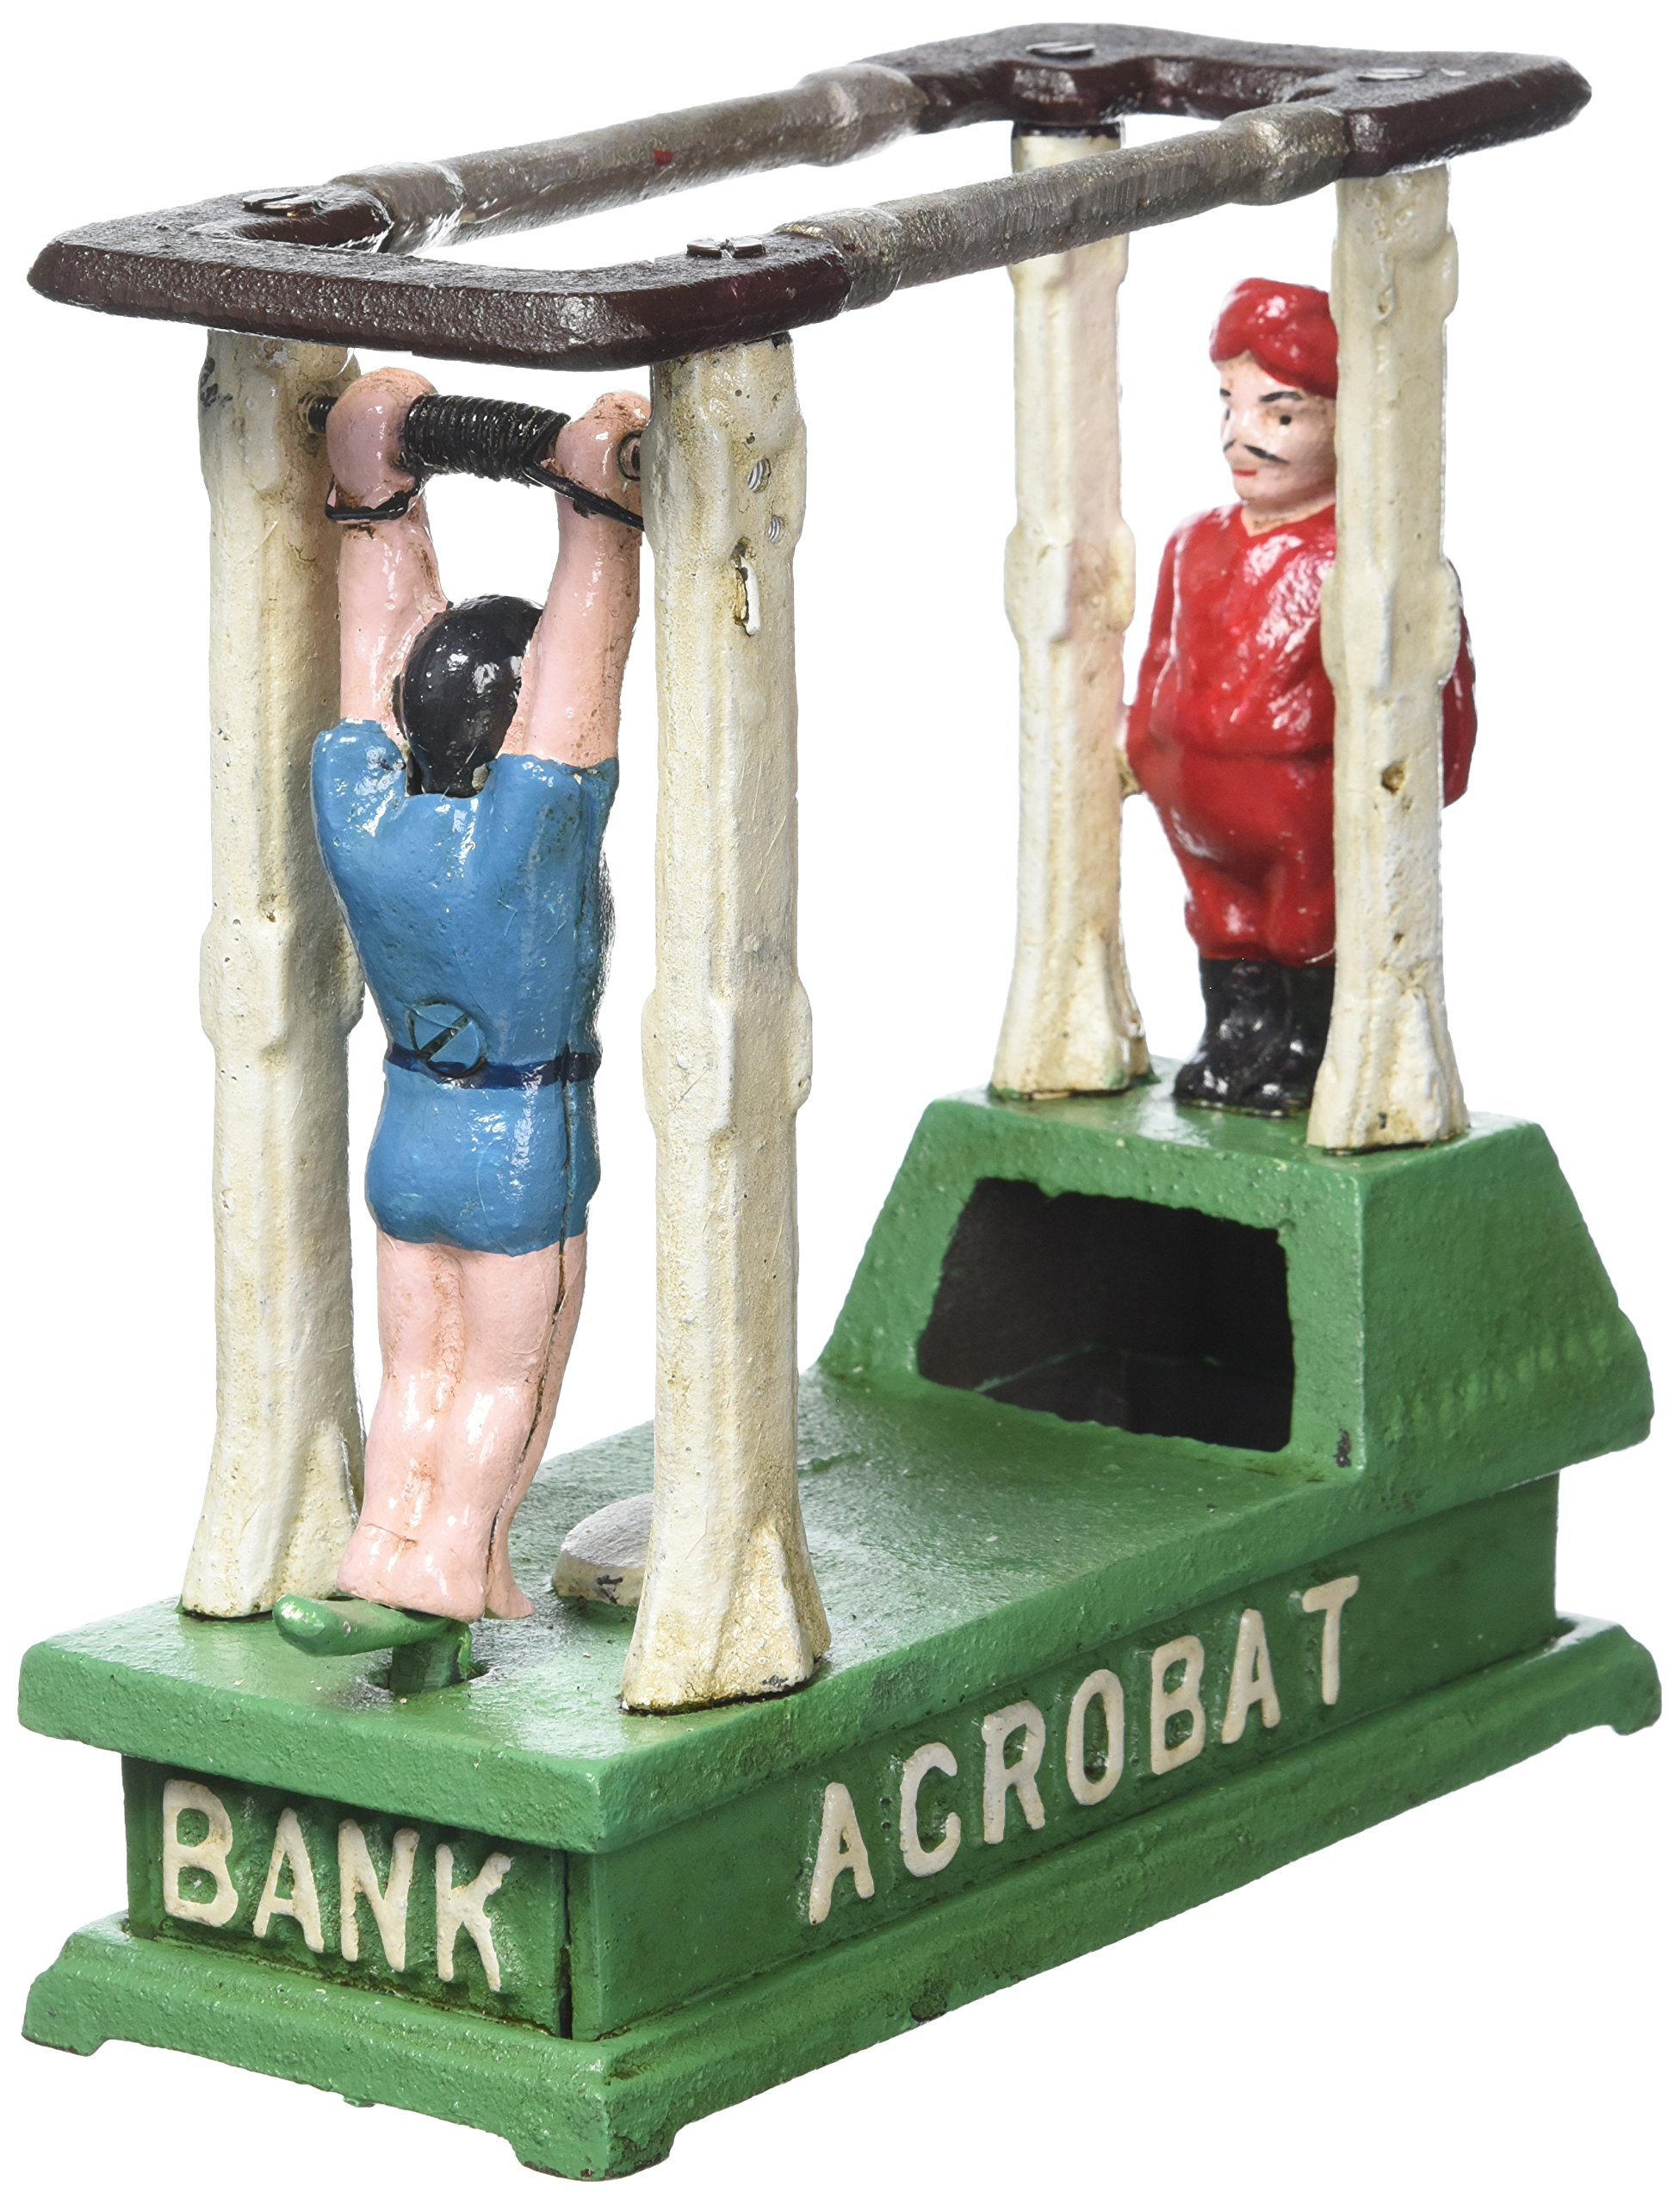 Design Toscano The Acrobat Collectors' Die-Cast Iron Mechanical Coin Bank by Design Toscano (Image #2)